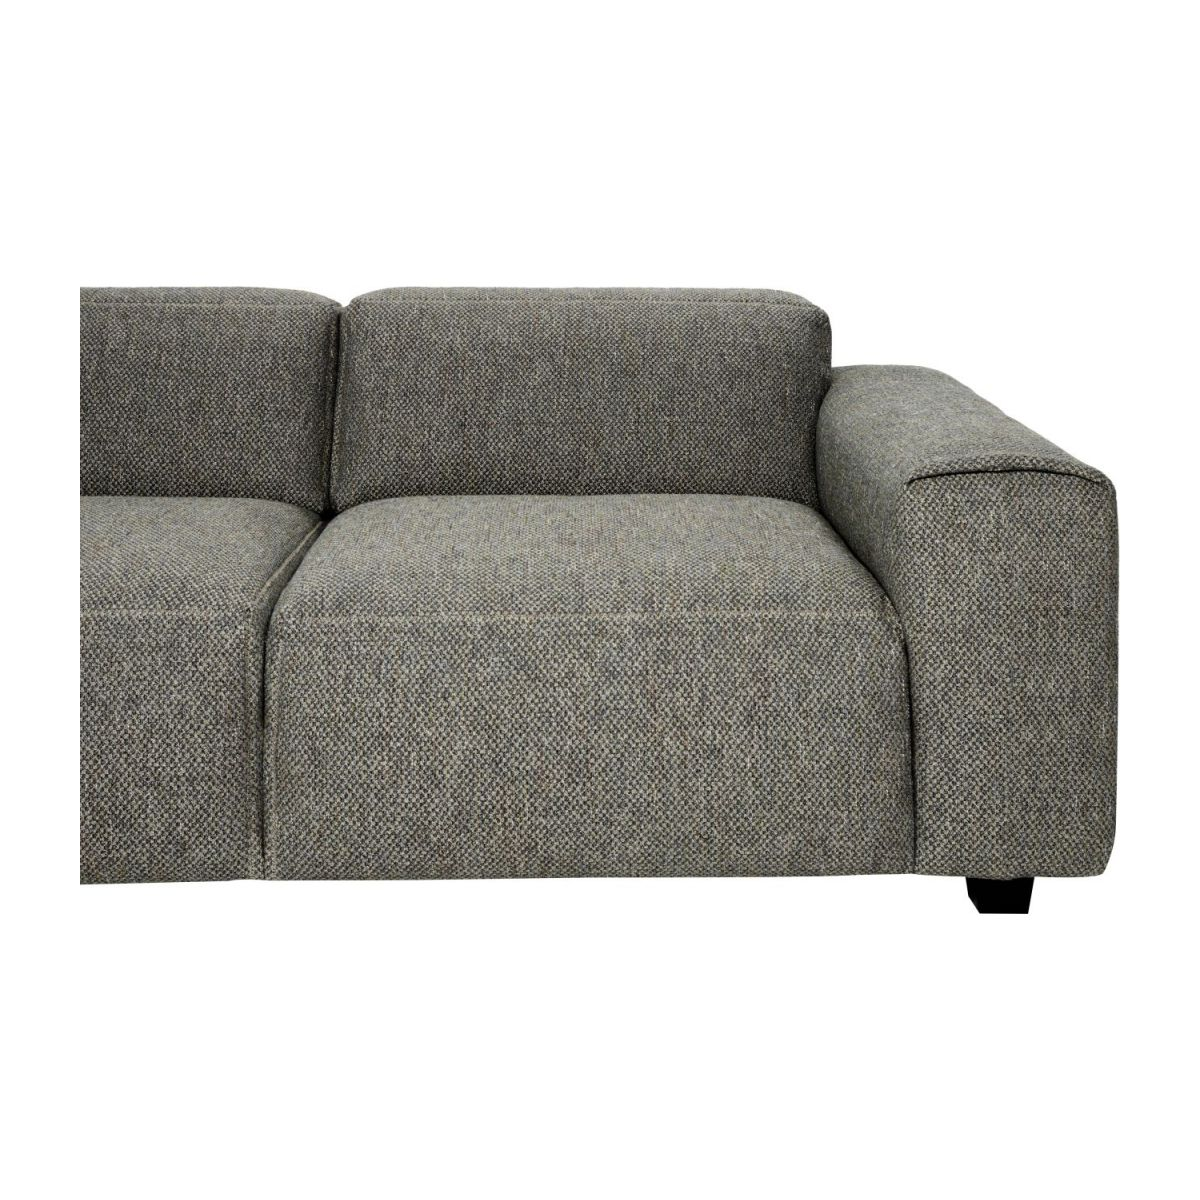 4-seter sofa, sort n°8